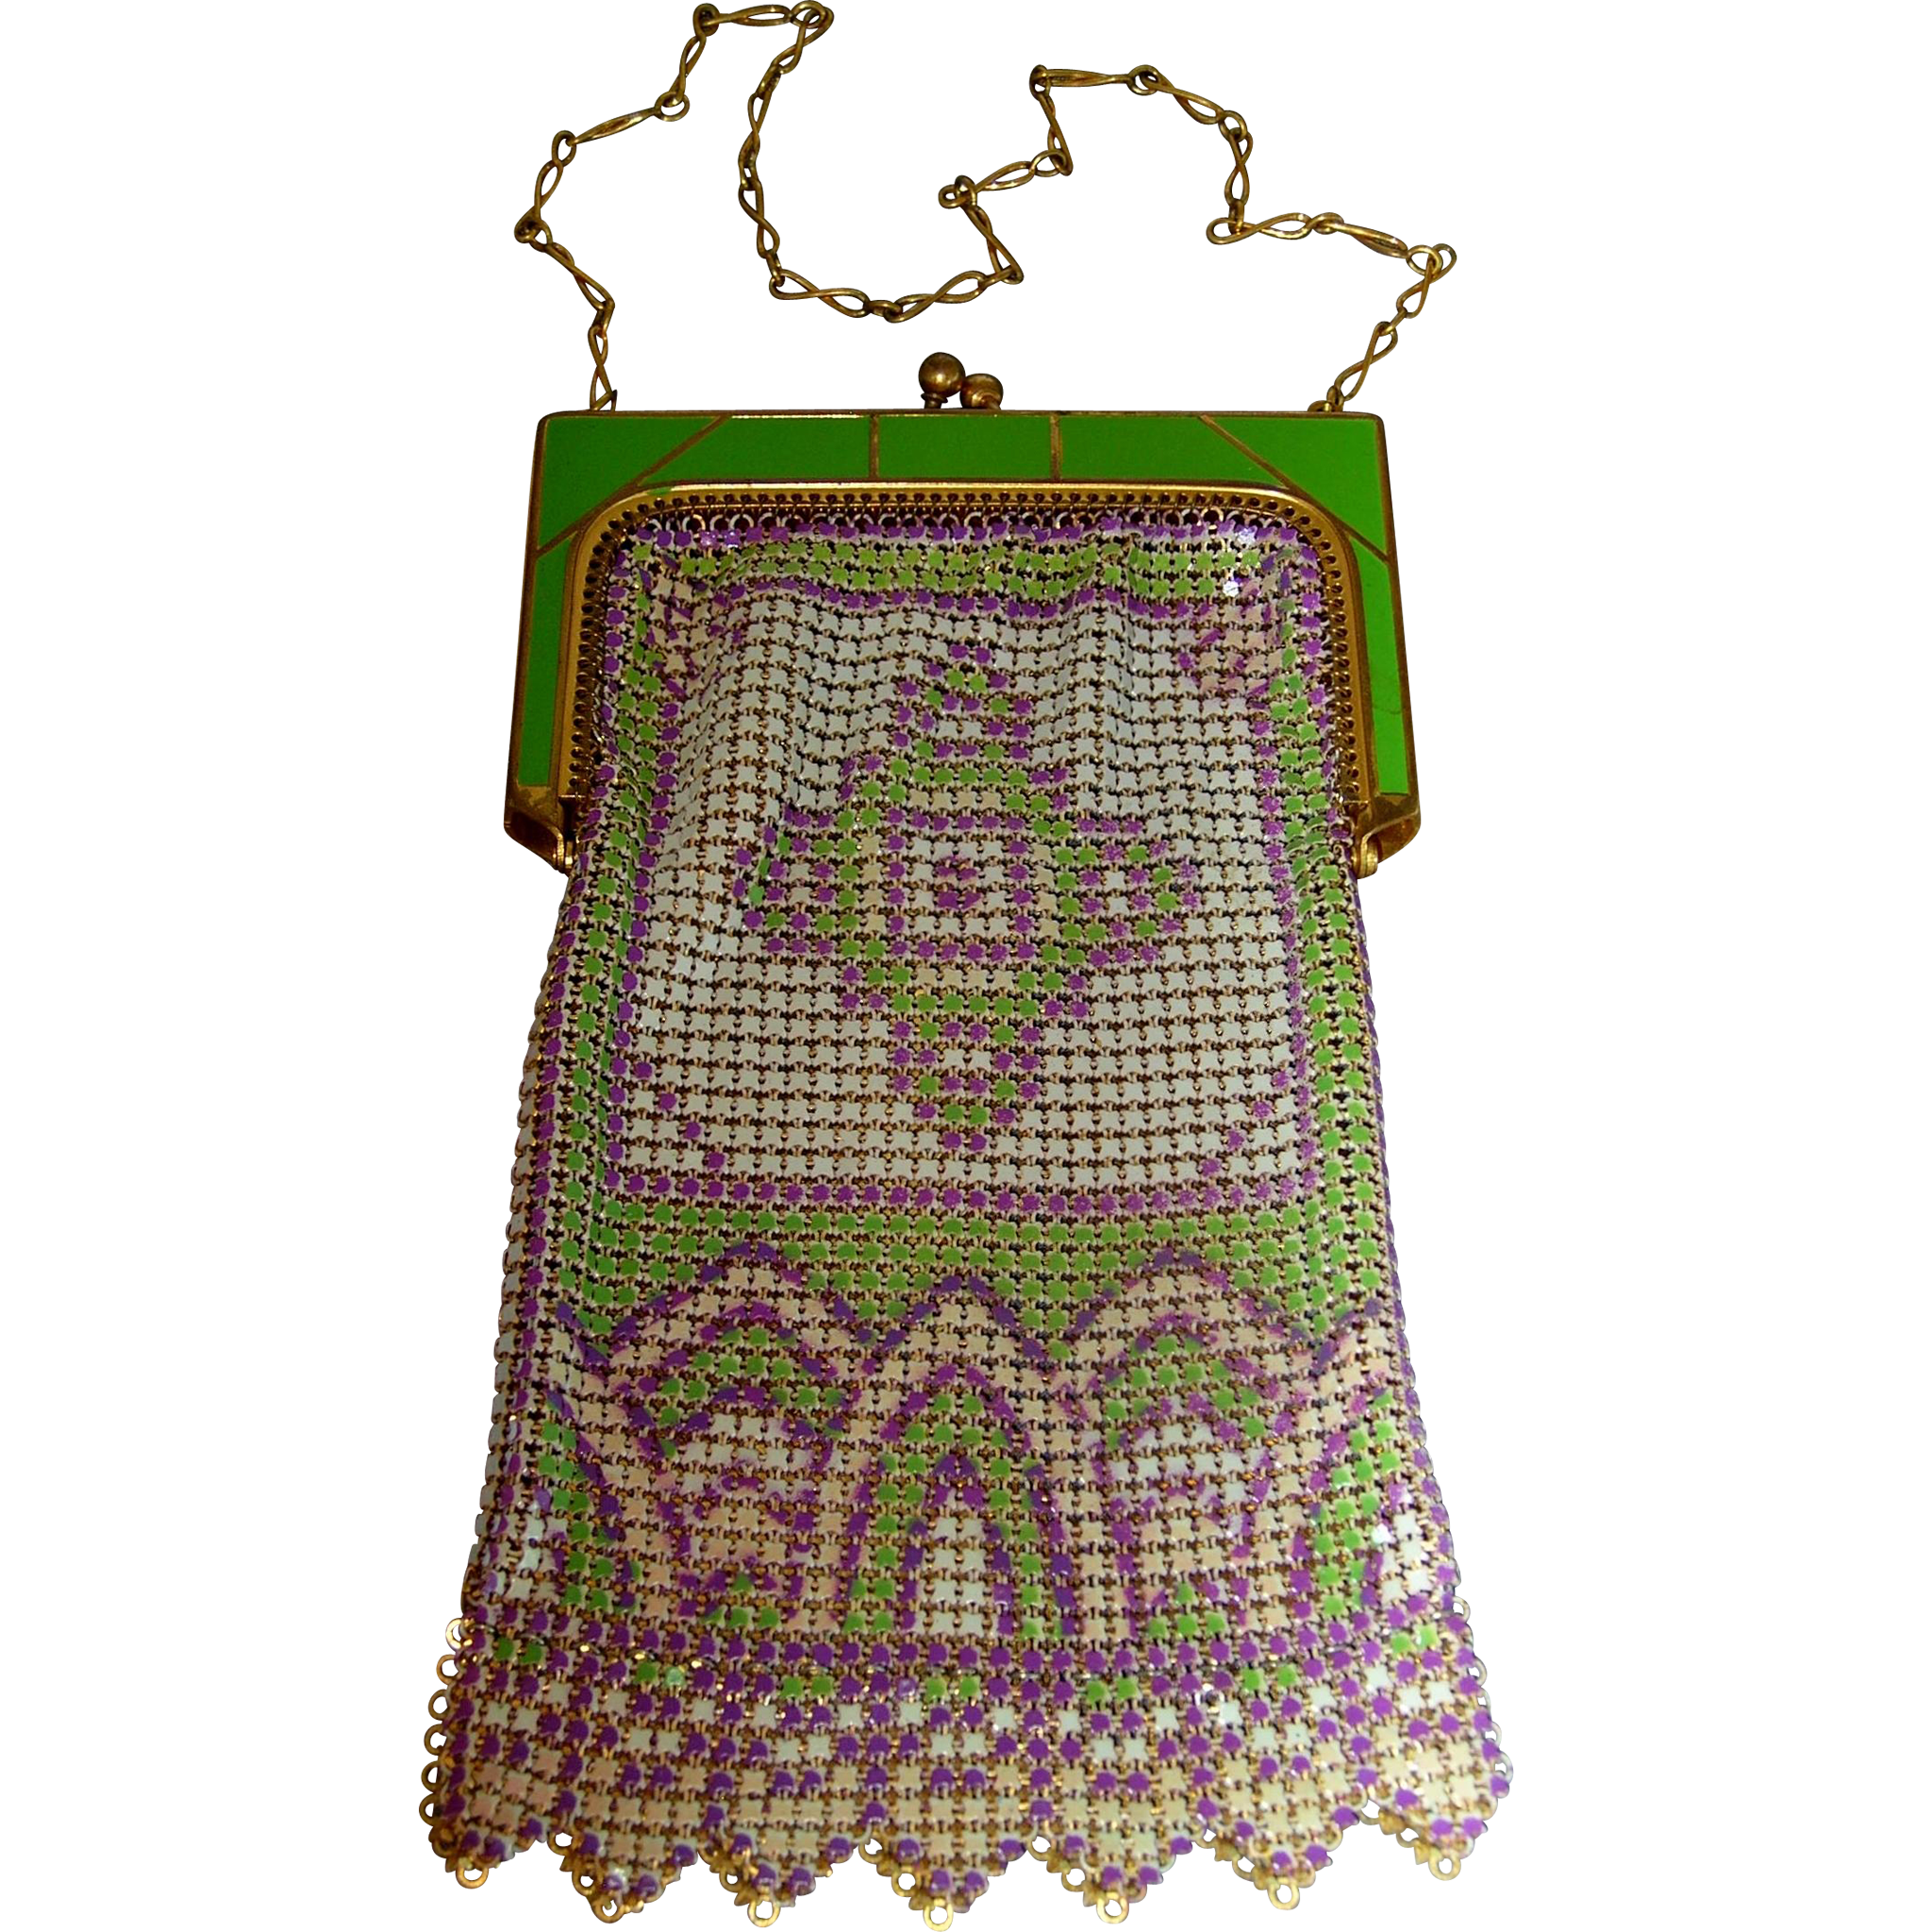 Whiting & Davis Enamel Mesh Purse in Suffragette Colors